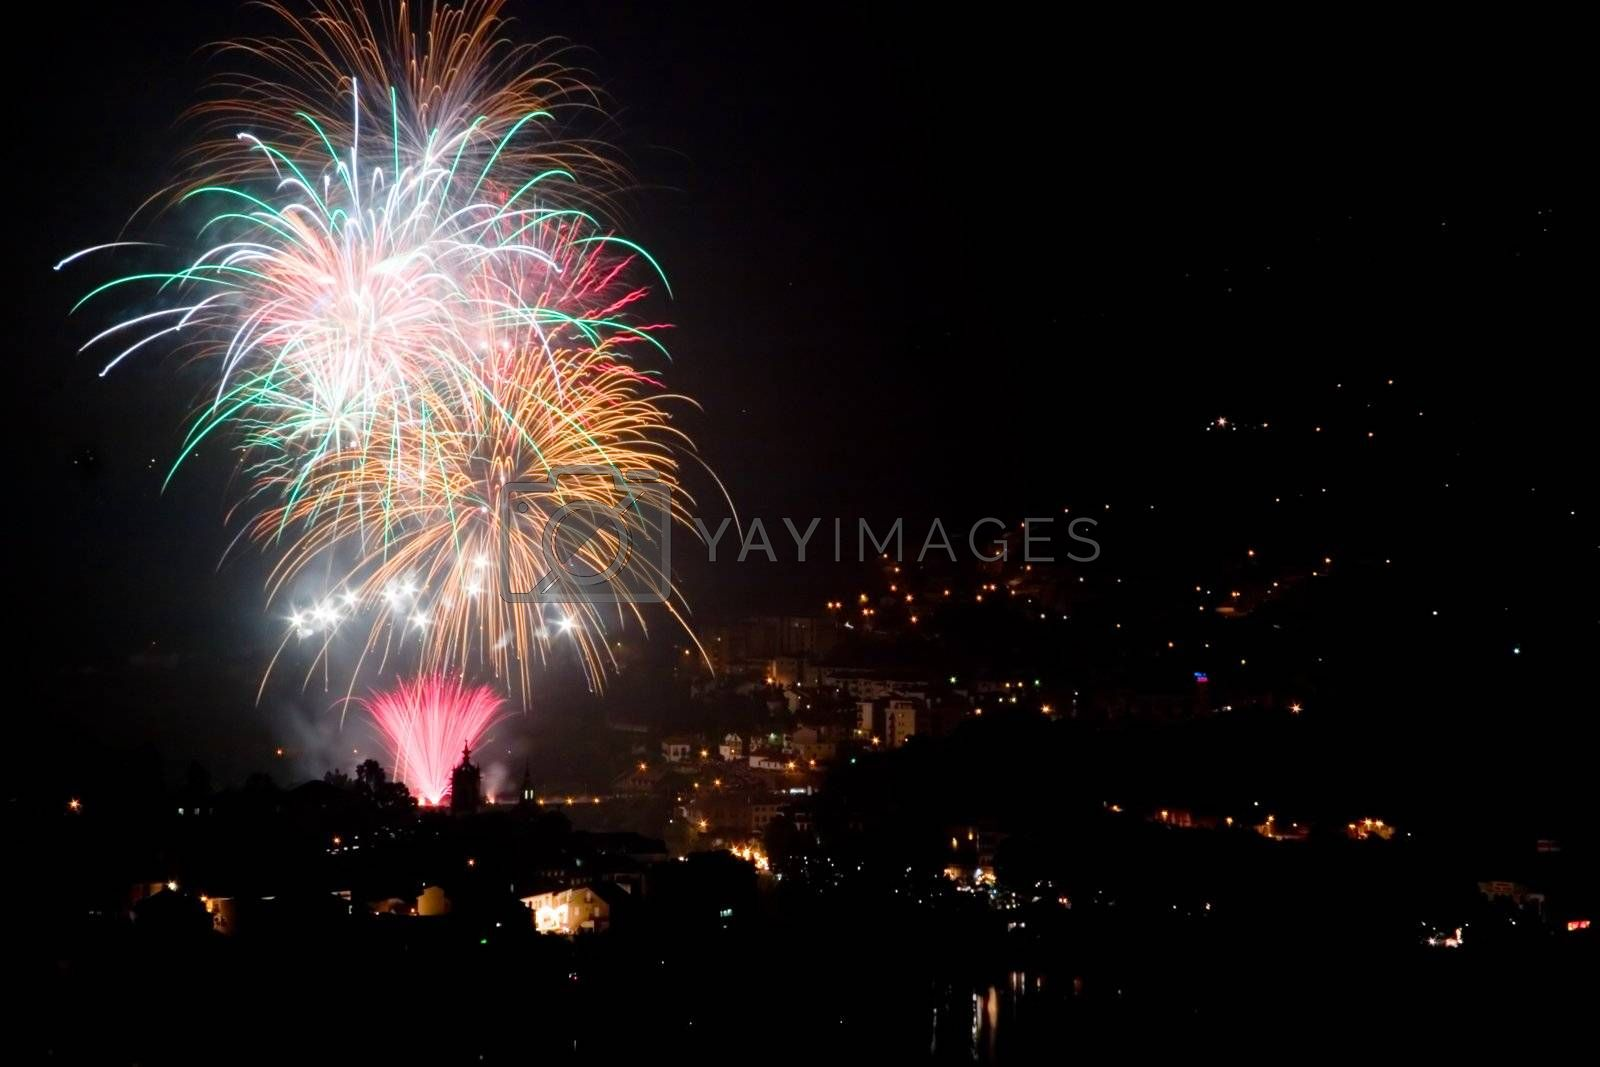 Royalty free image of Fireworks Display by ajn